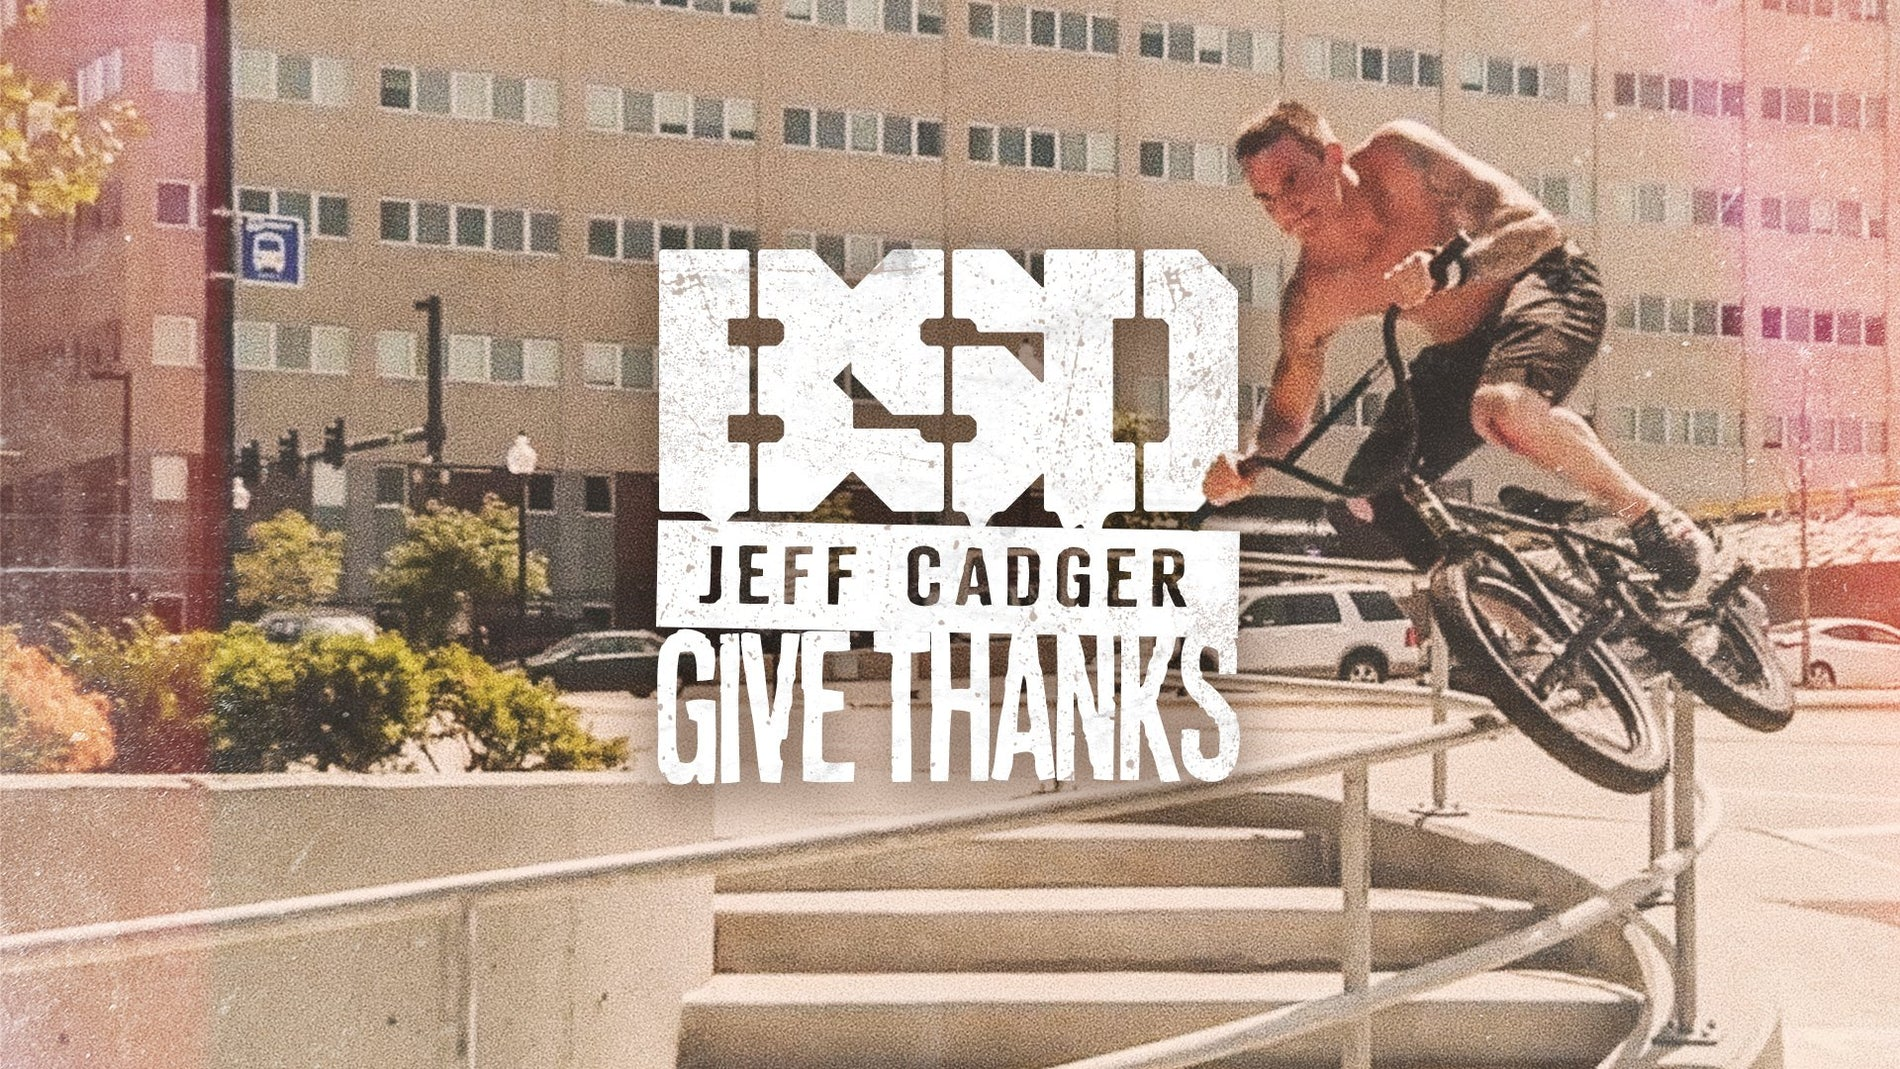 BE THANKFUL FOR JEFF CADGER!